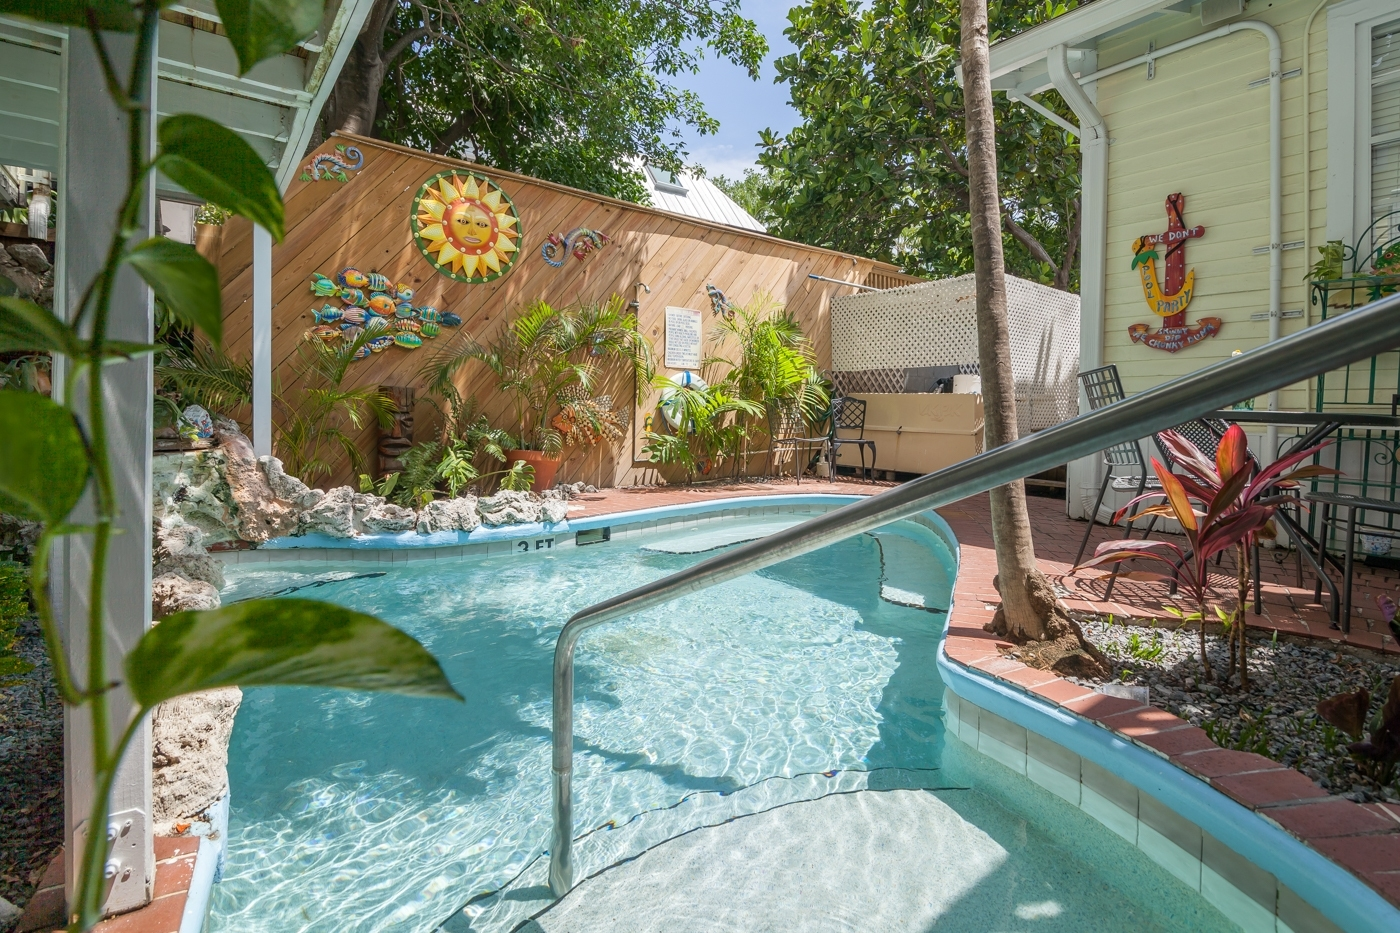 Home Design Ideas. Duval Gardens. Waterfall 4 Garden House Bed in Garden House Bed And Breakfast Key West Fl